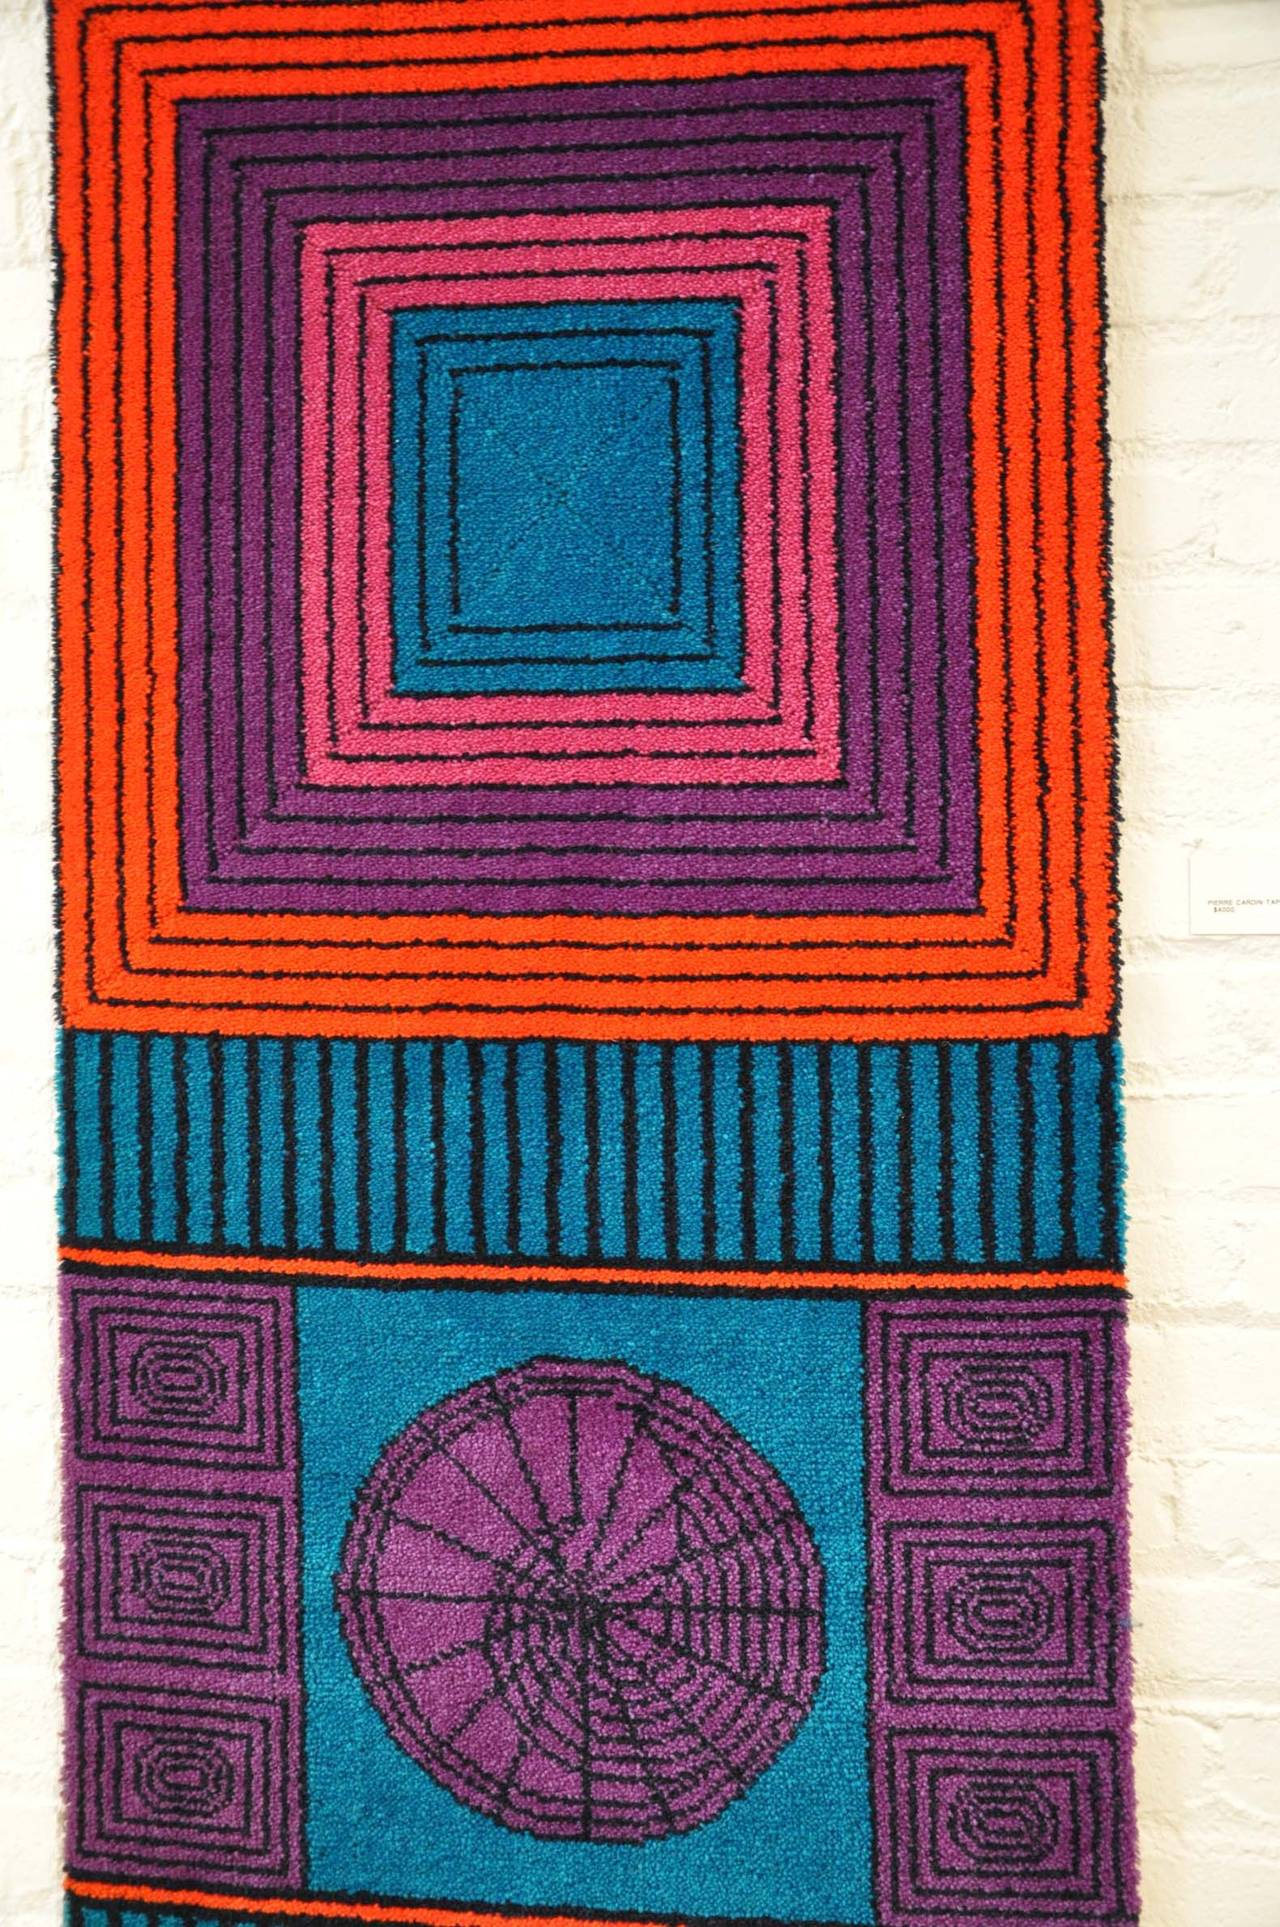 Pierre Cardin, Signed Wool Tapestry 4